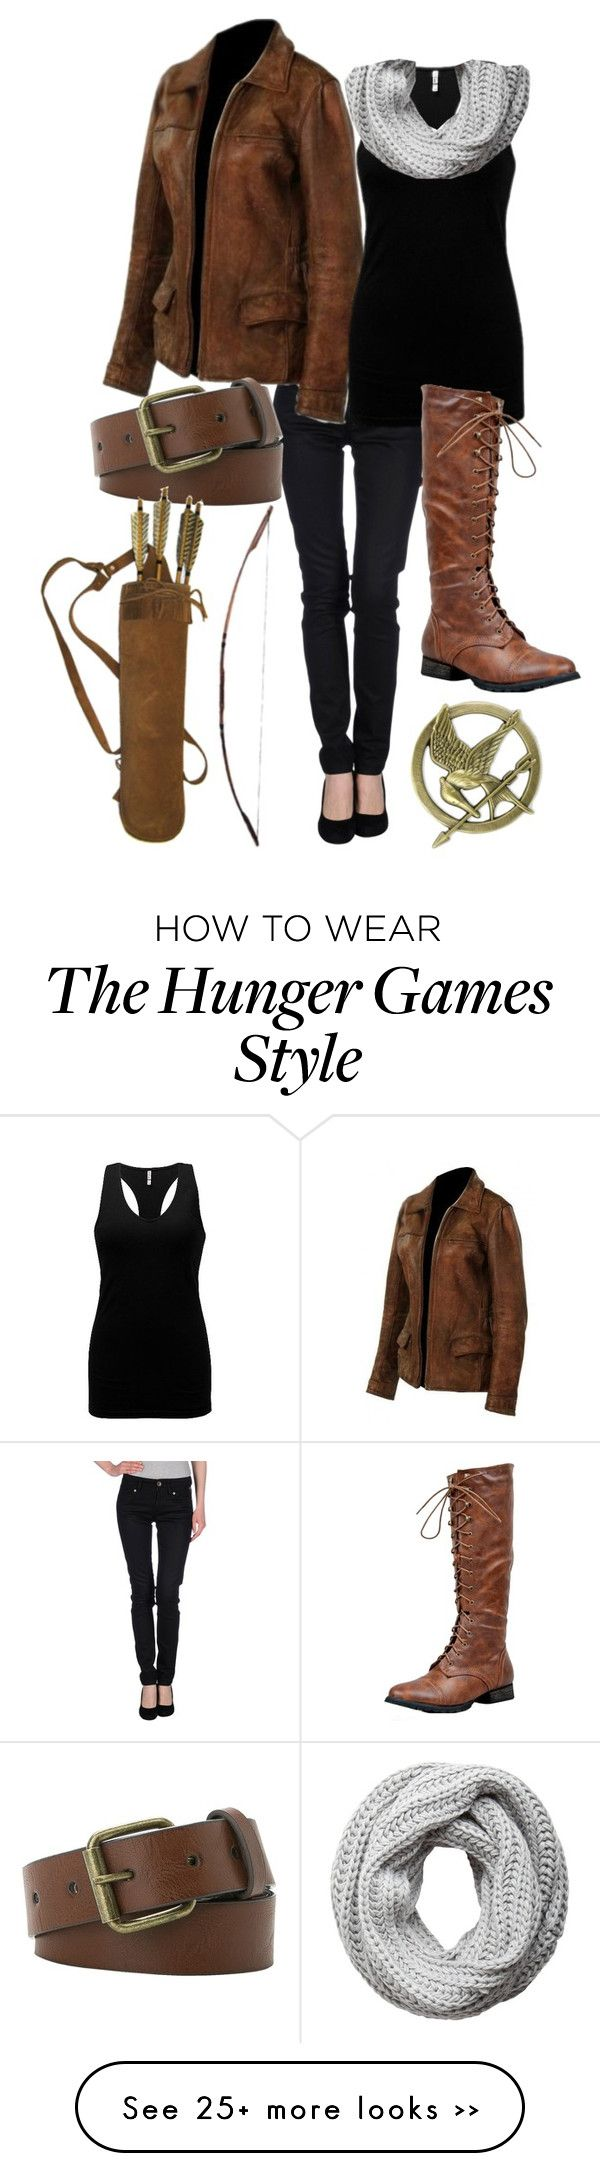 Katniss Everdeen by fiery-phoenix on Polyvore featuring Replay, BKE core, Breckelles, MANGO, Pieces and MAC Cosmetics